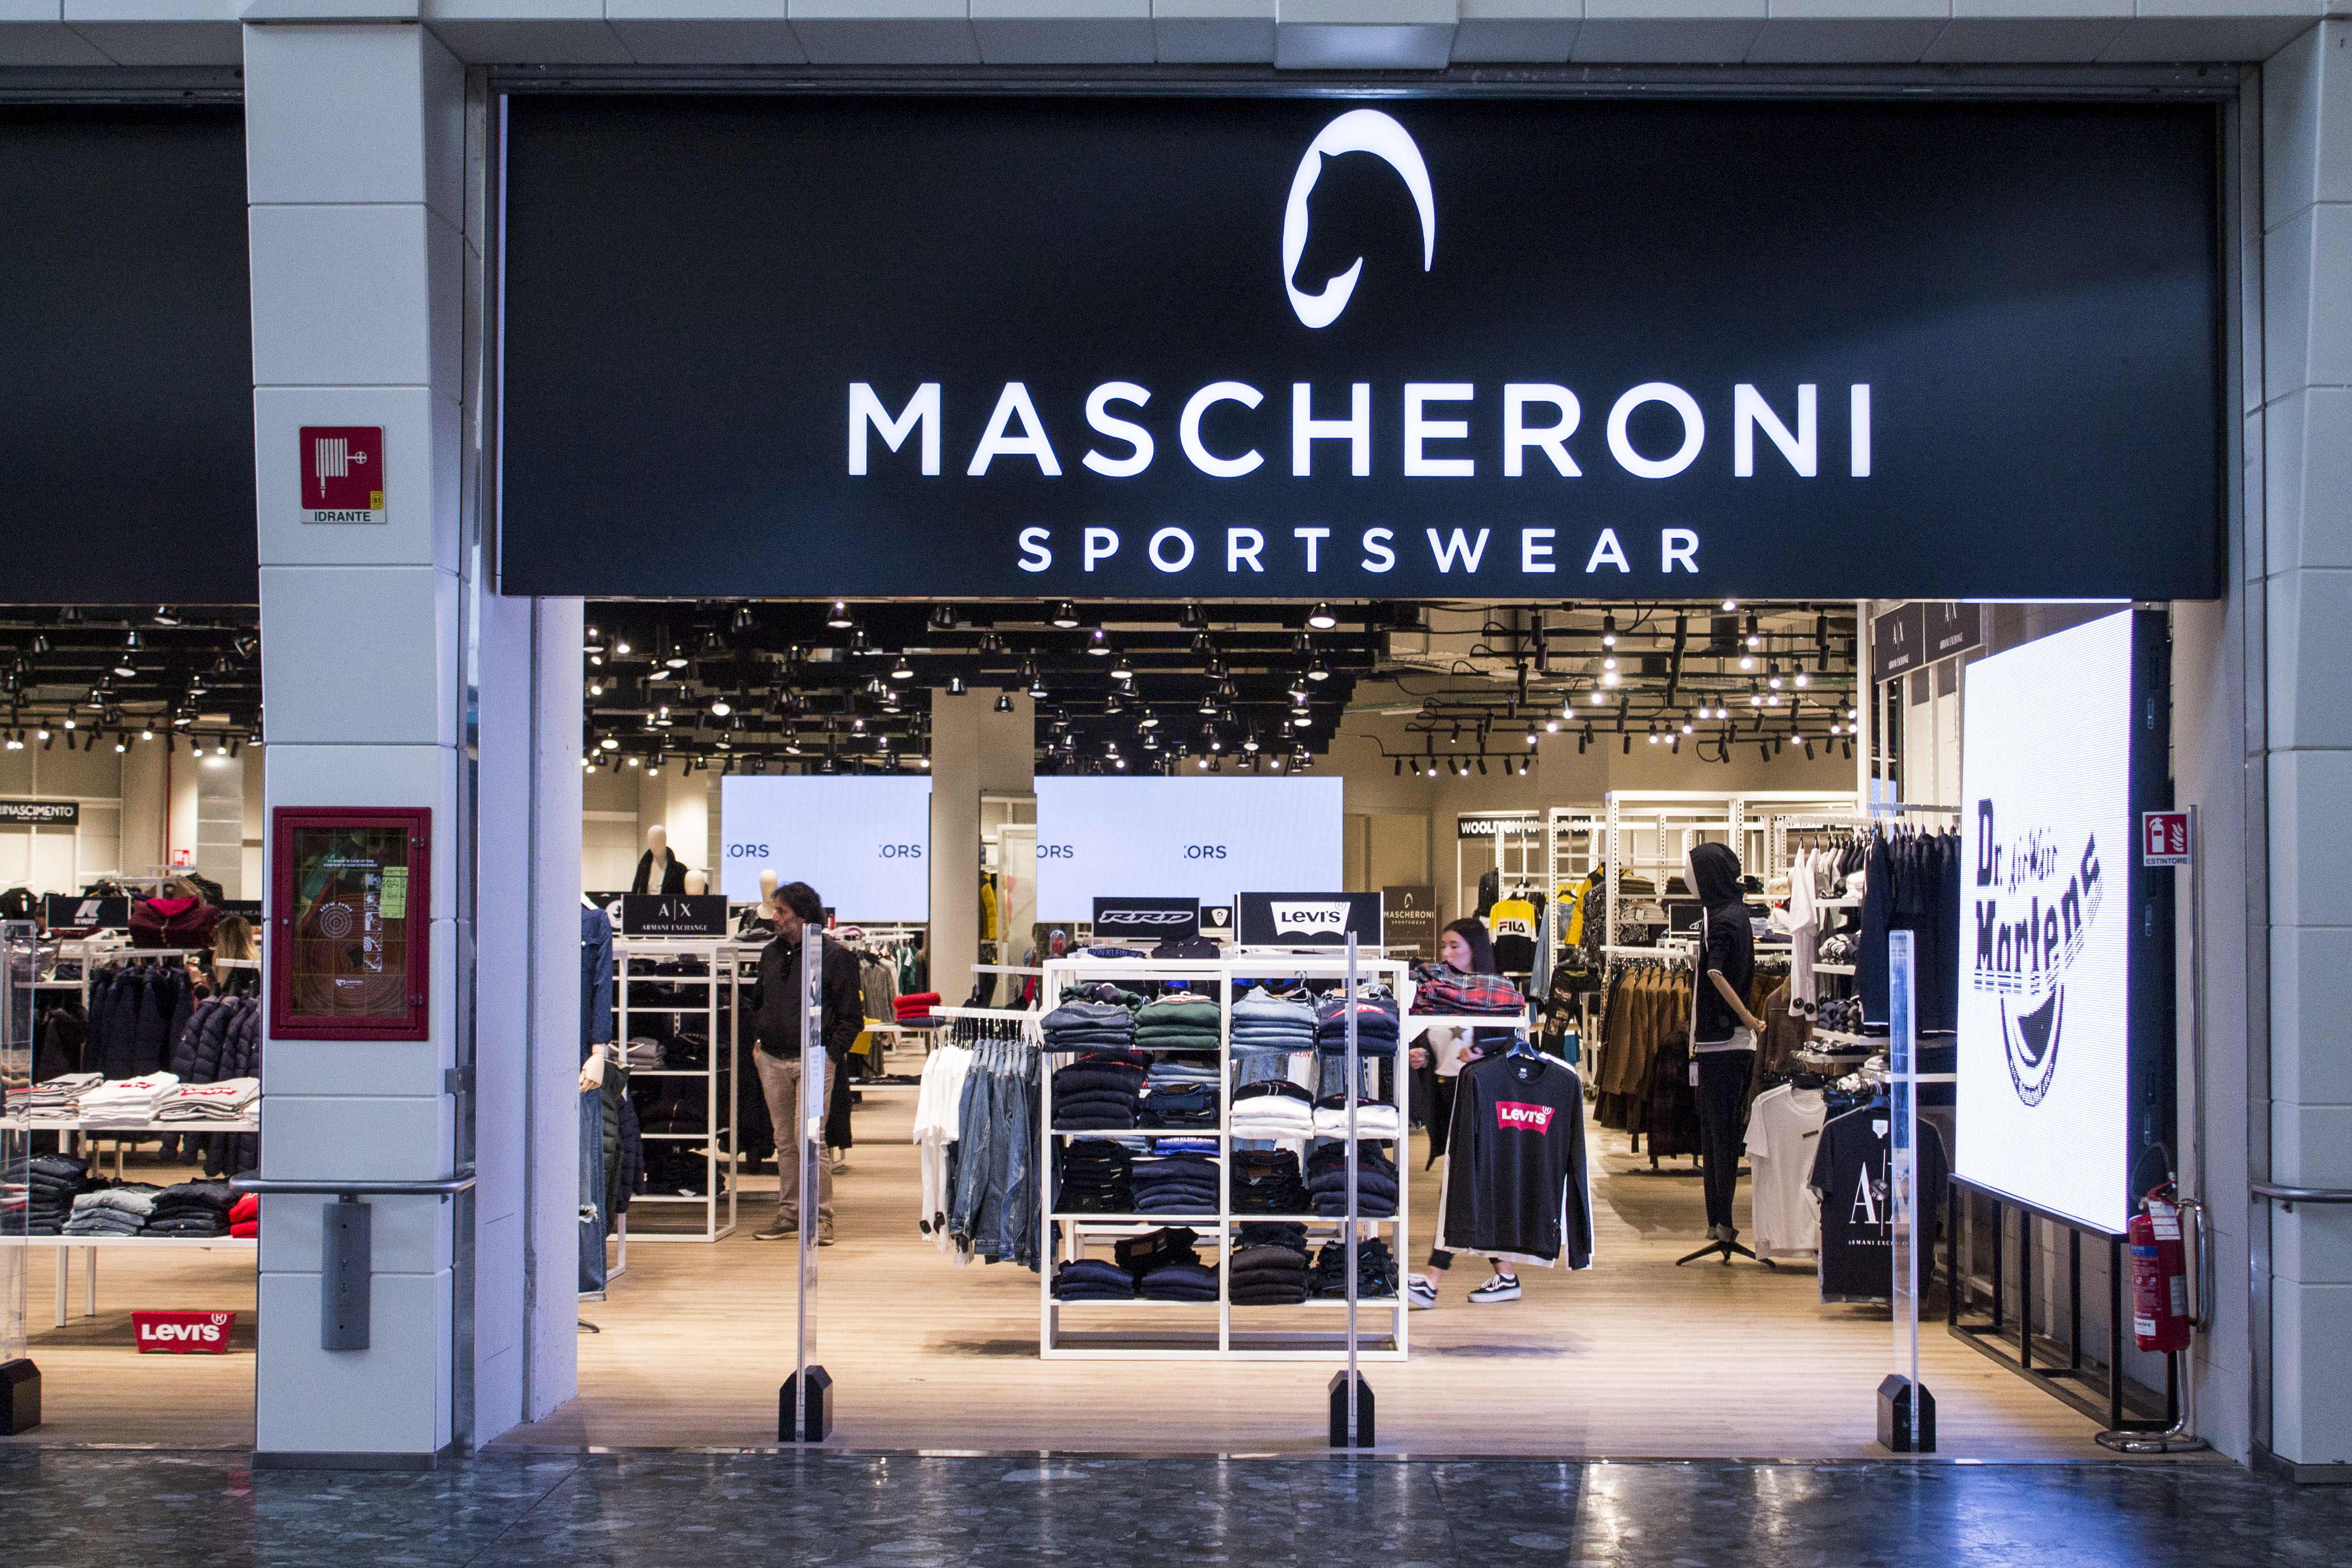 MASCHERONI SPORTS WEAR – LIMBIATE